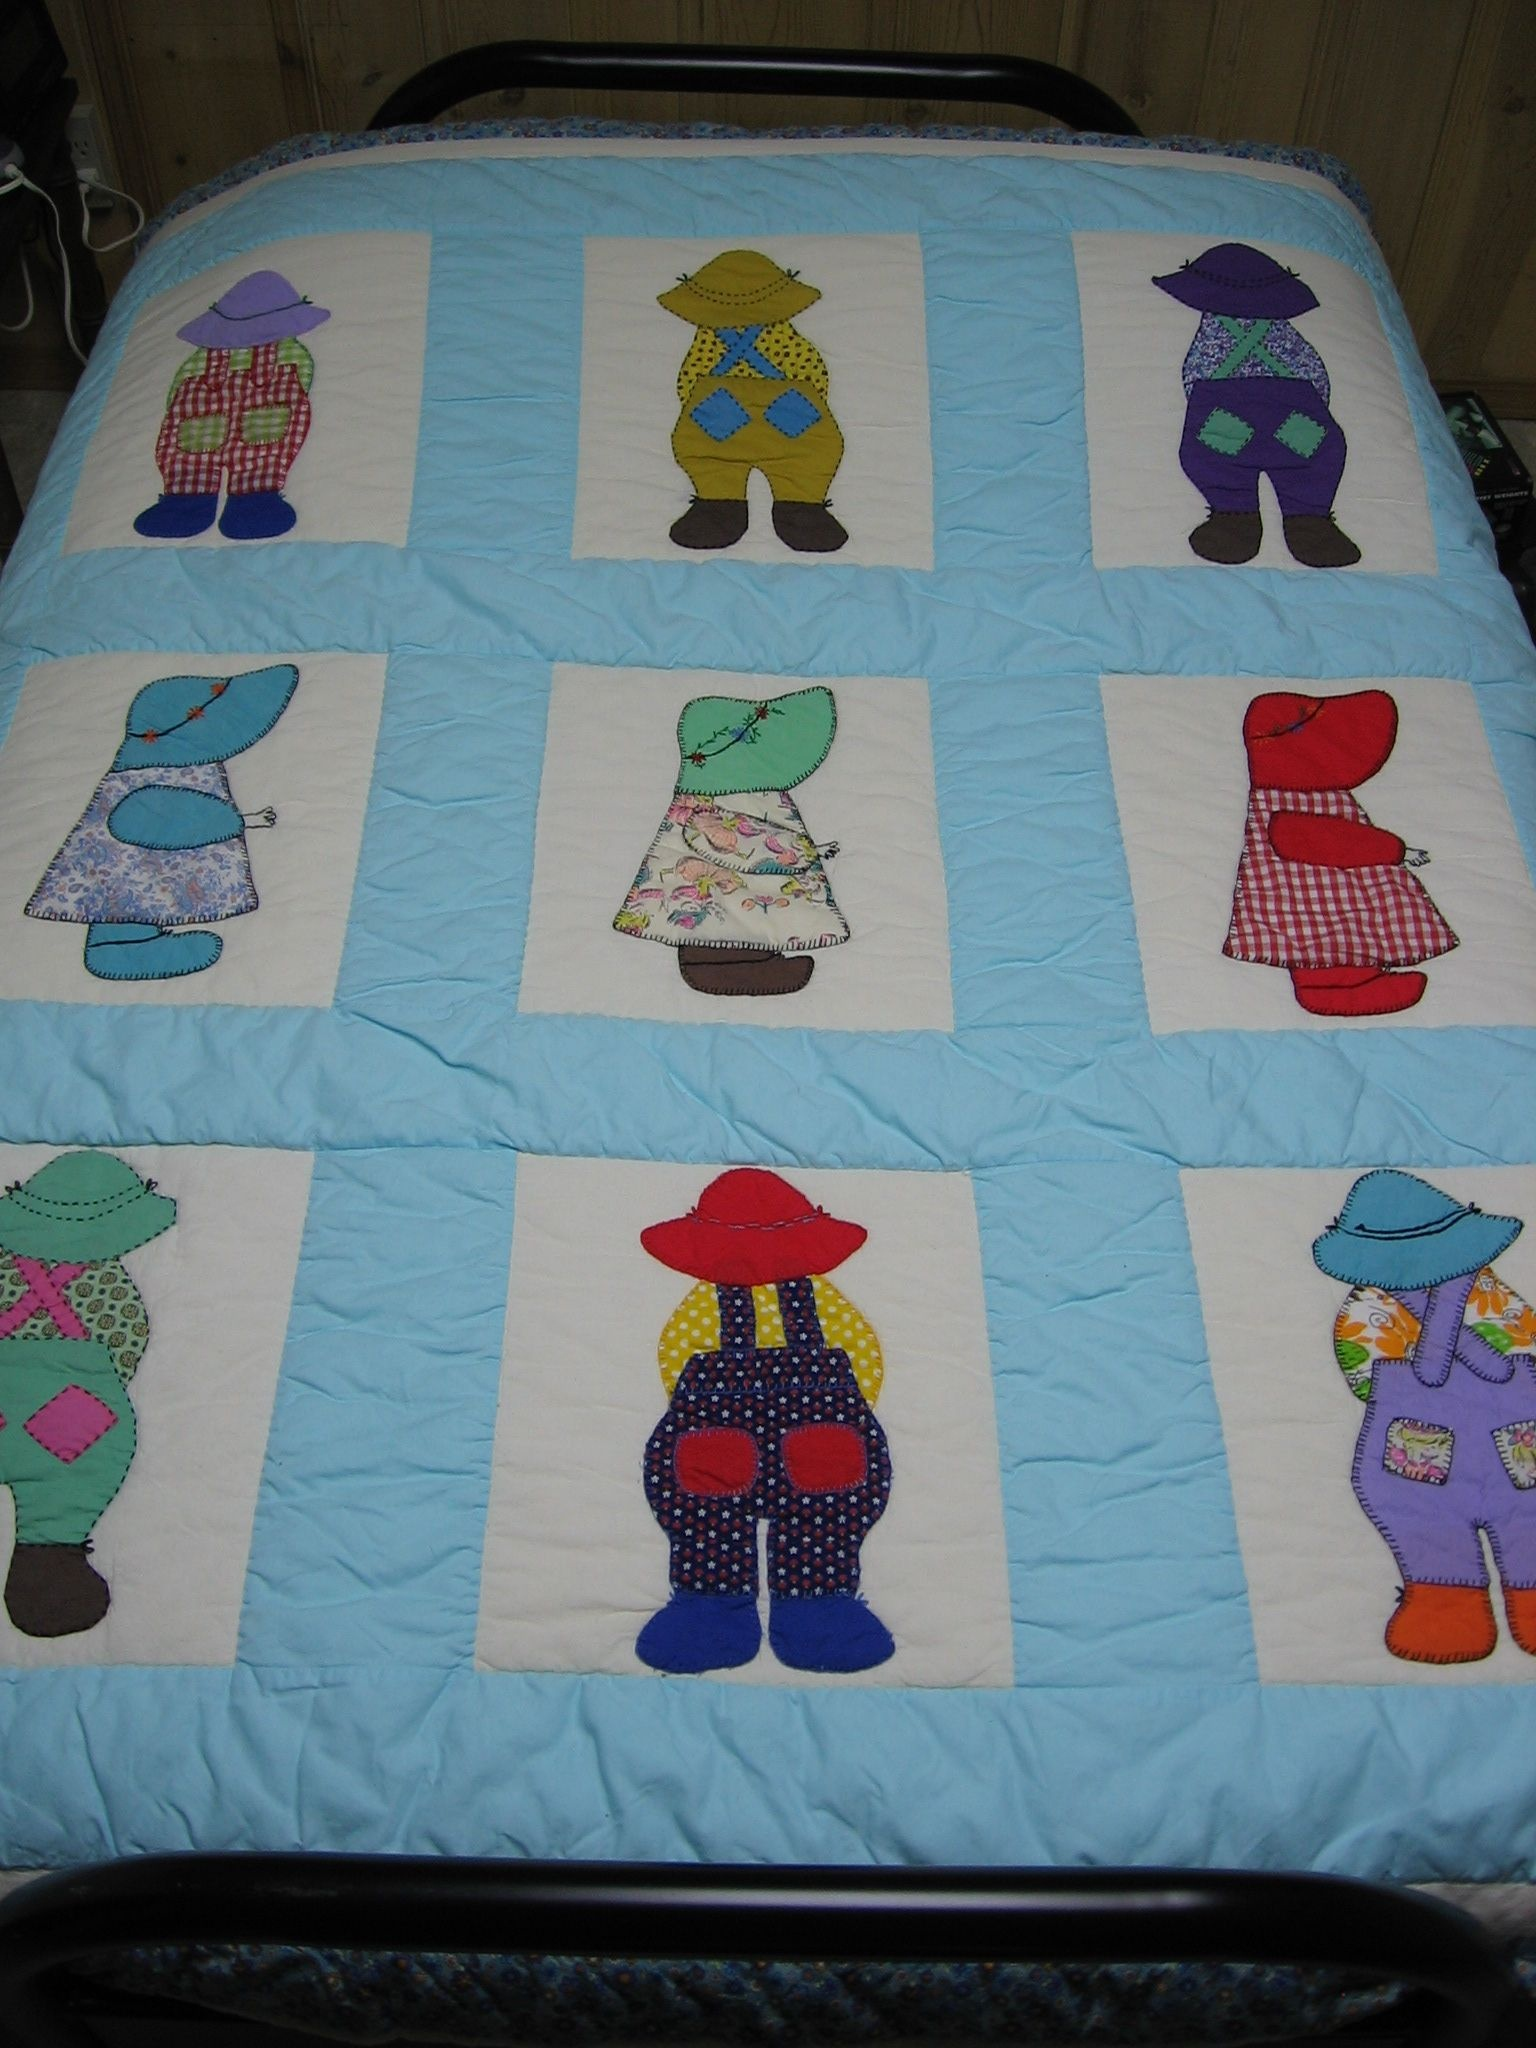 My Mother's Dutch Boy And Girl Quilt Blocks That She Made In Her - Free Printable Dutch Girl Quilt Pattern